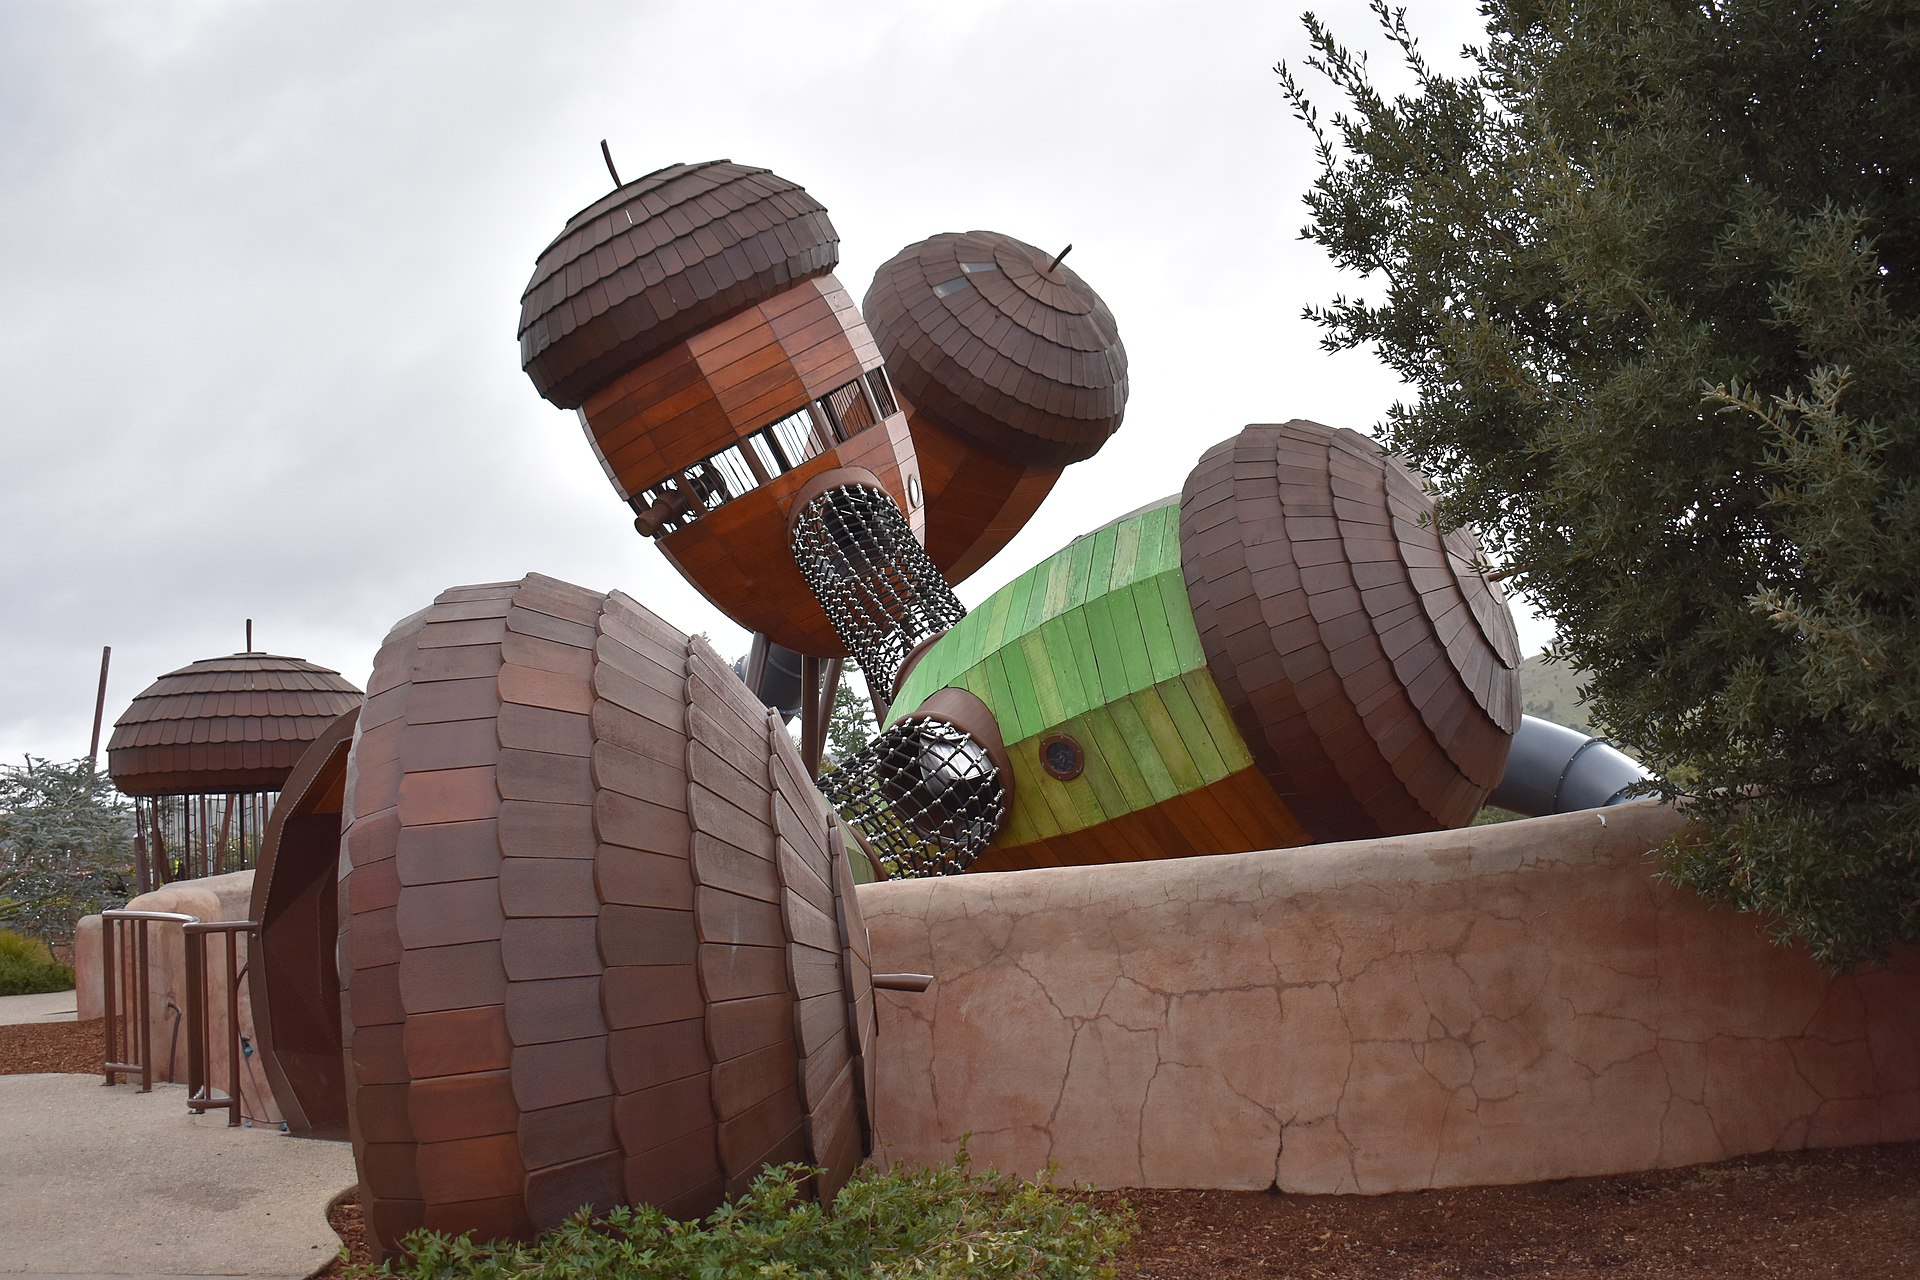 the big acorns in ACT. a big playground with giant acorns wooden structures